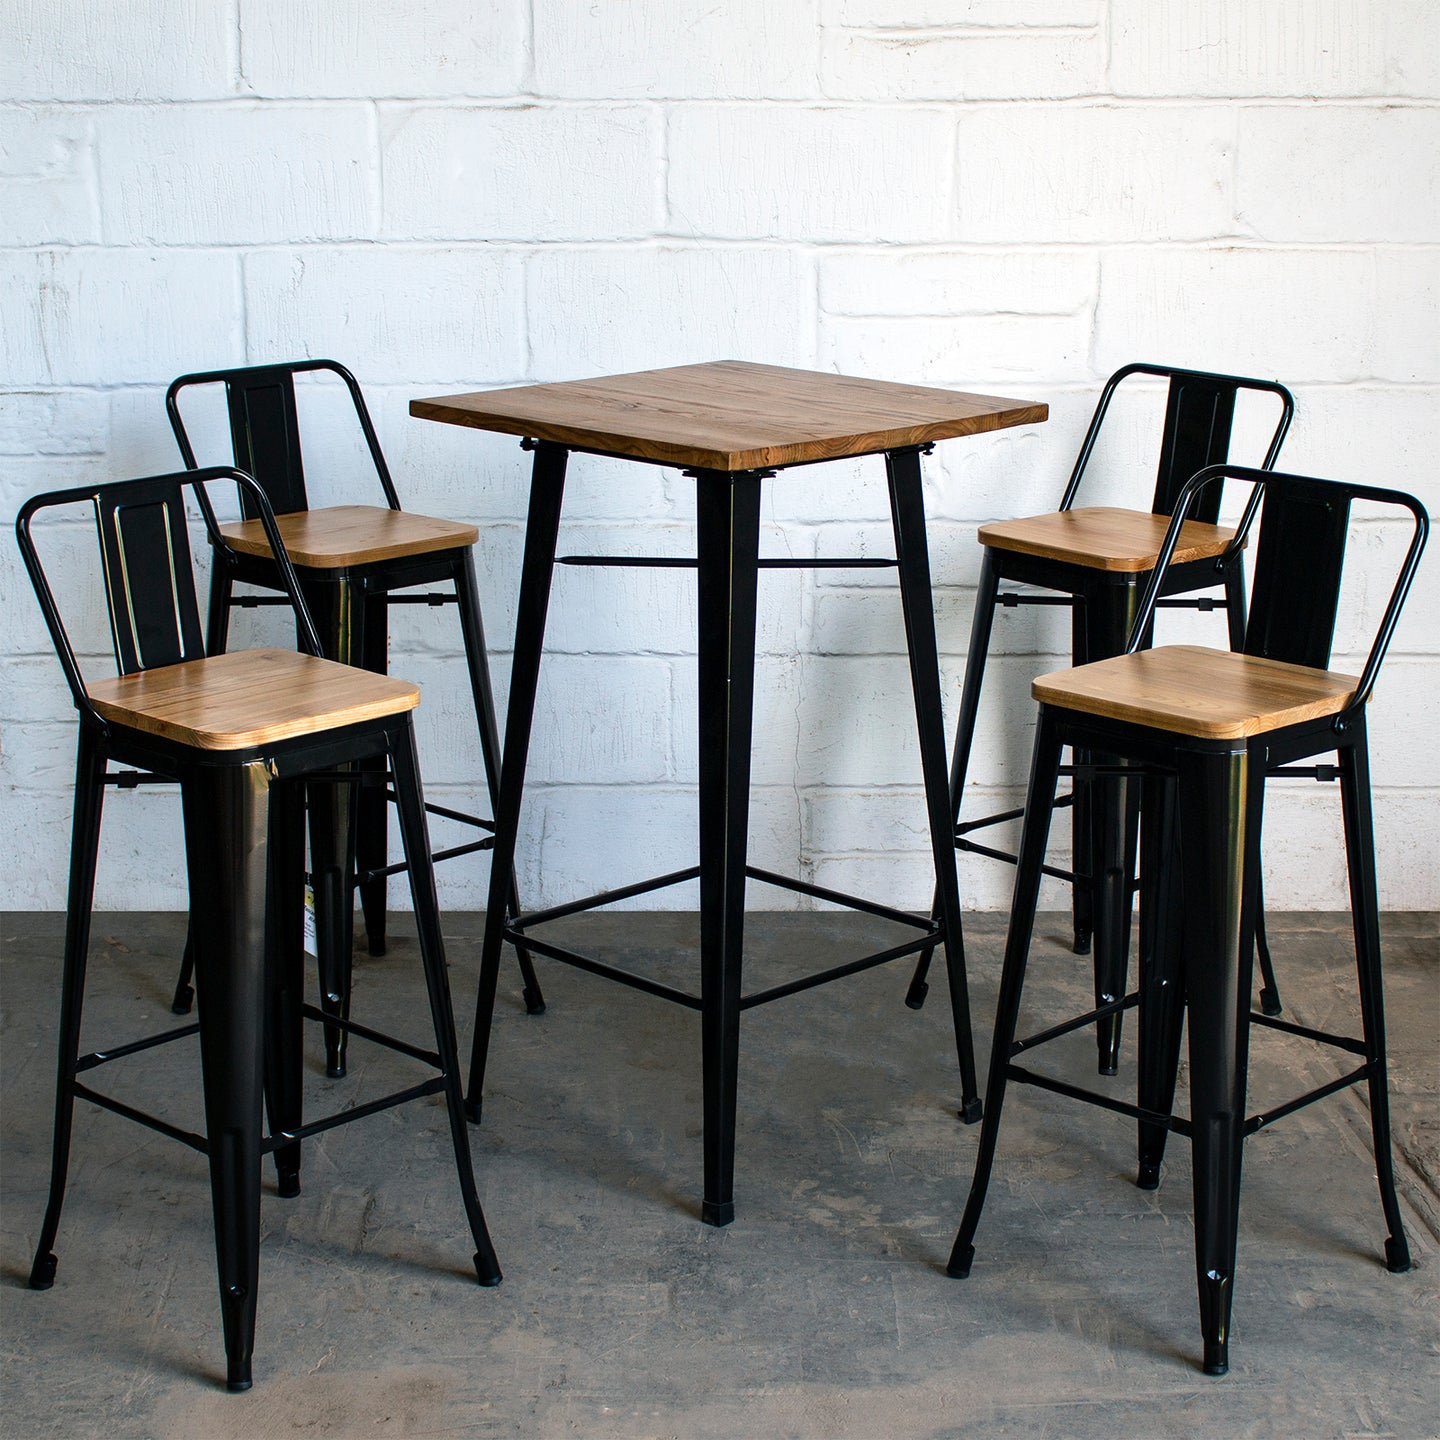 5PC Lodi Table & Tuscany Bar Stool Set - Black